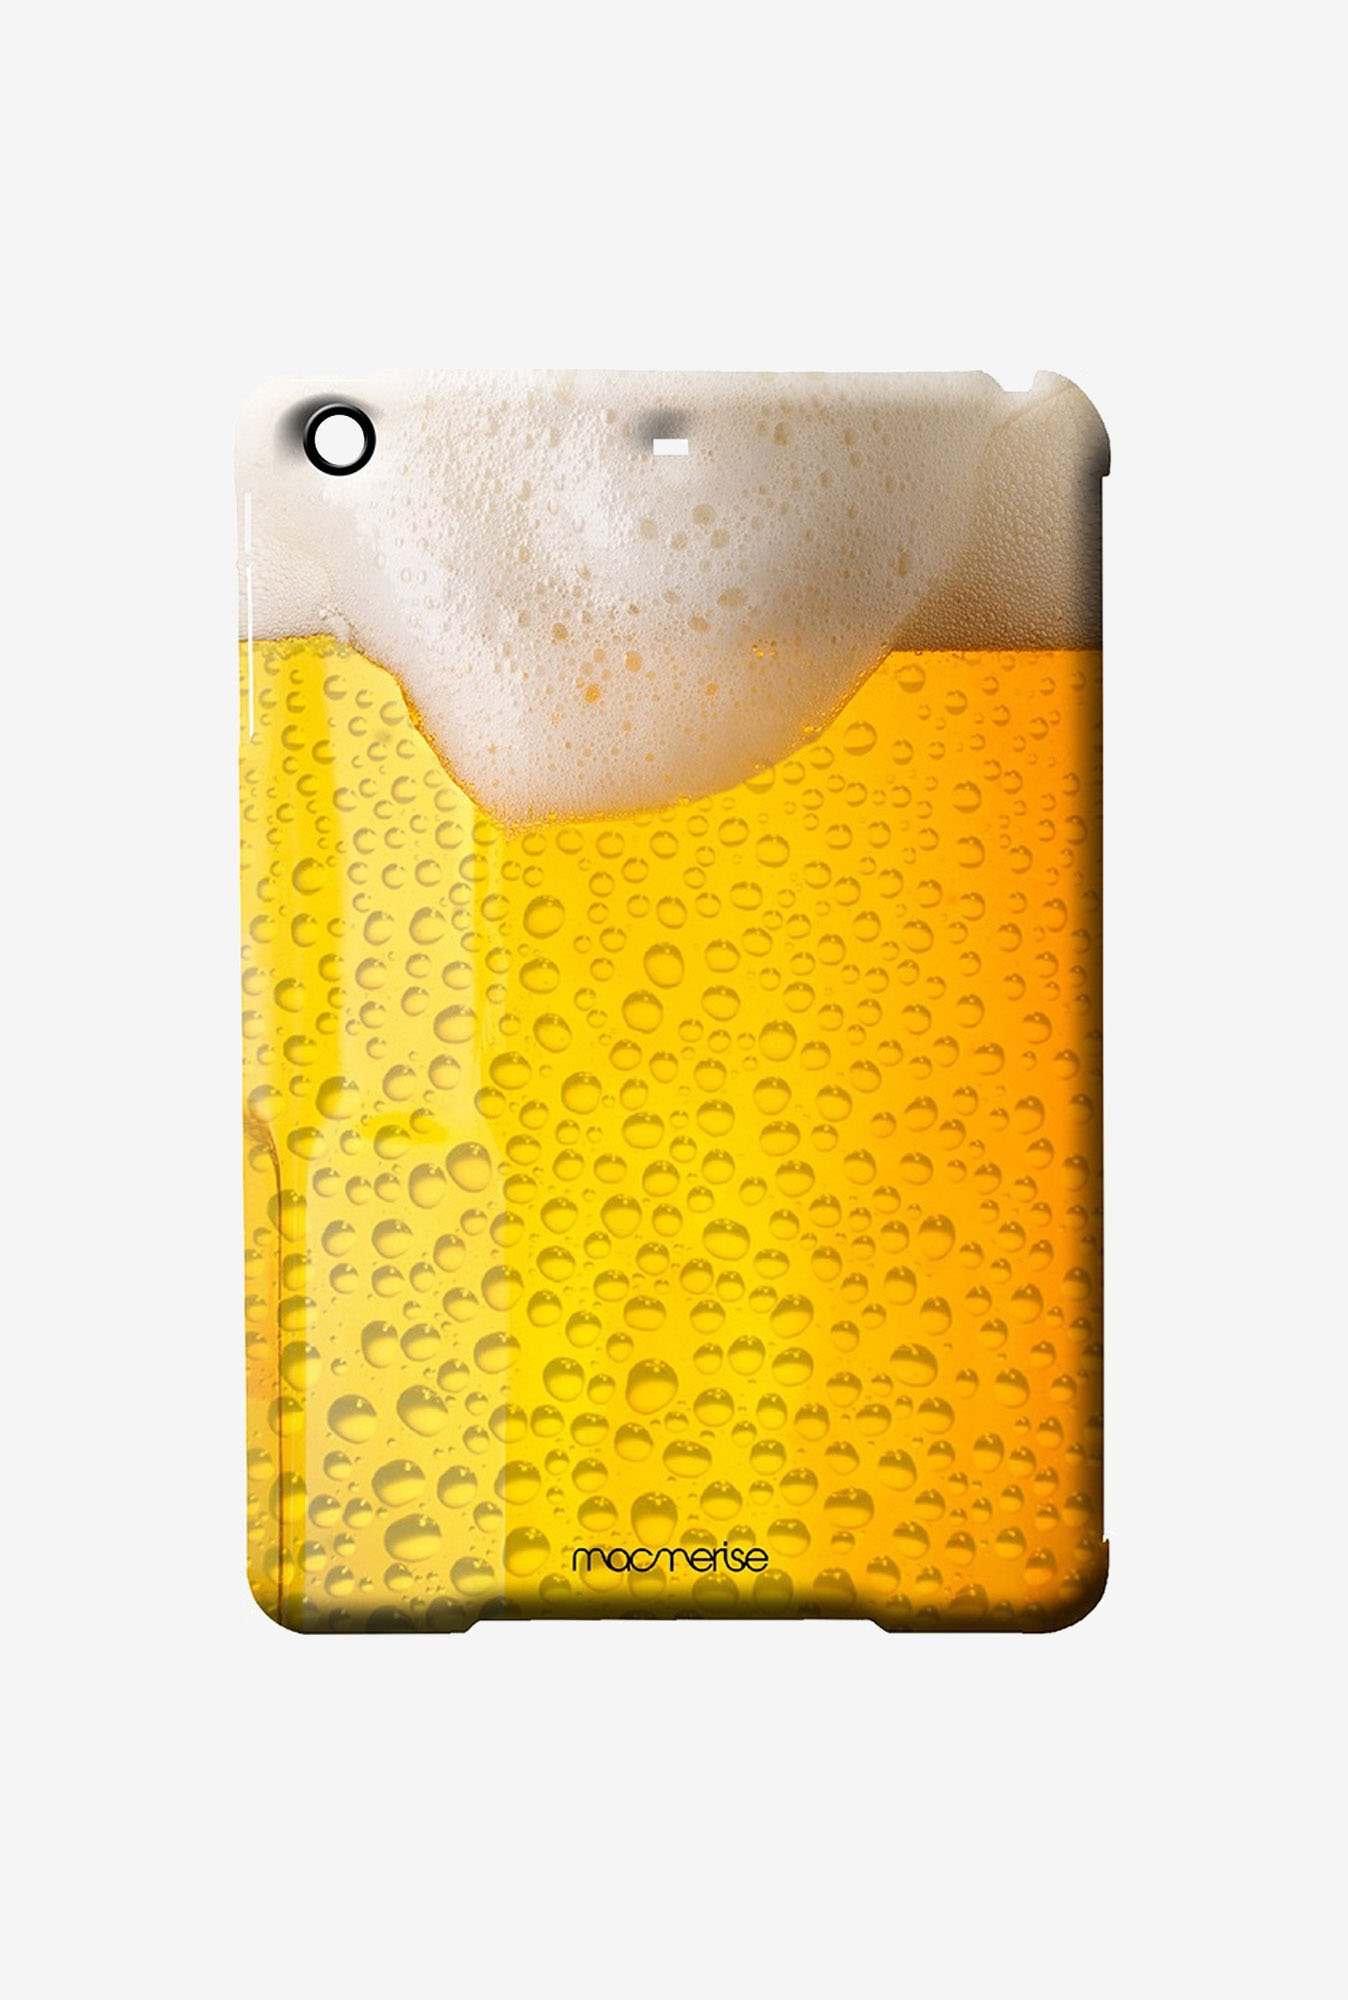 Macmerise Chug It Pro Case for iPad Air 2